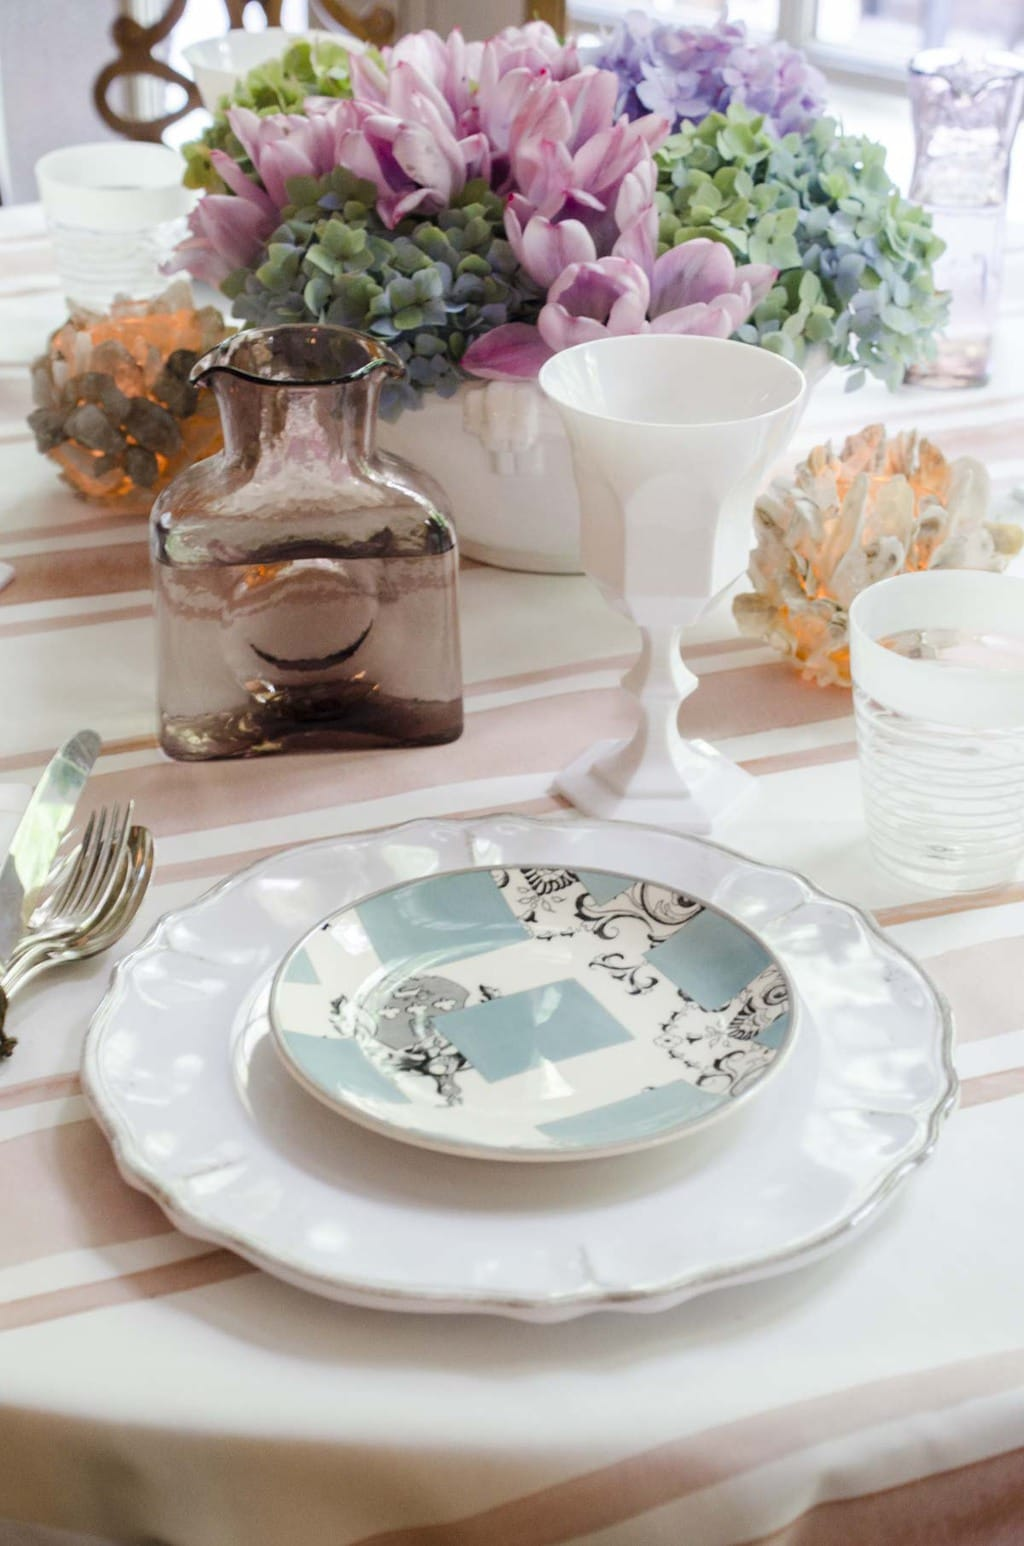 Setting the table with Steve McKenzie, watercolor table setting via @thouswellblog